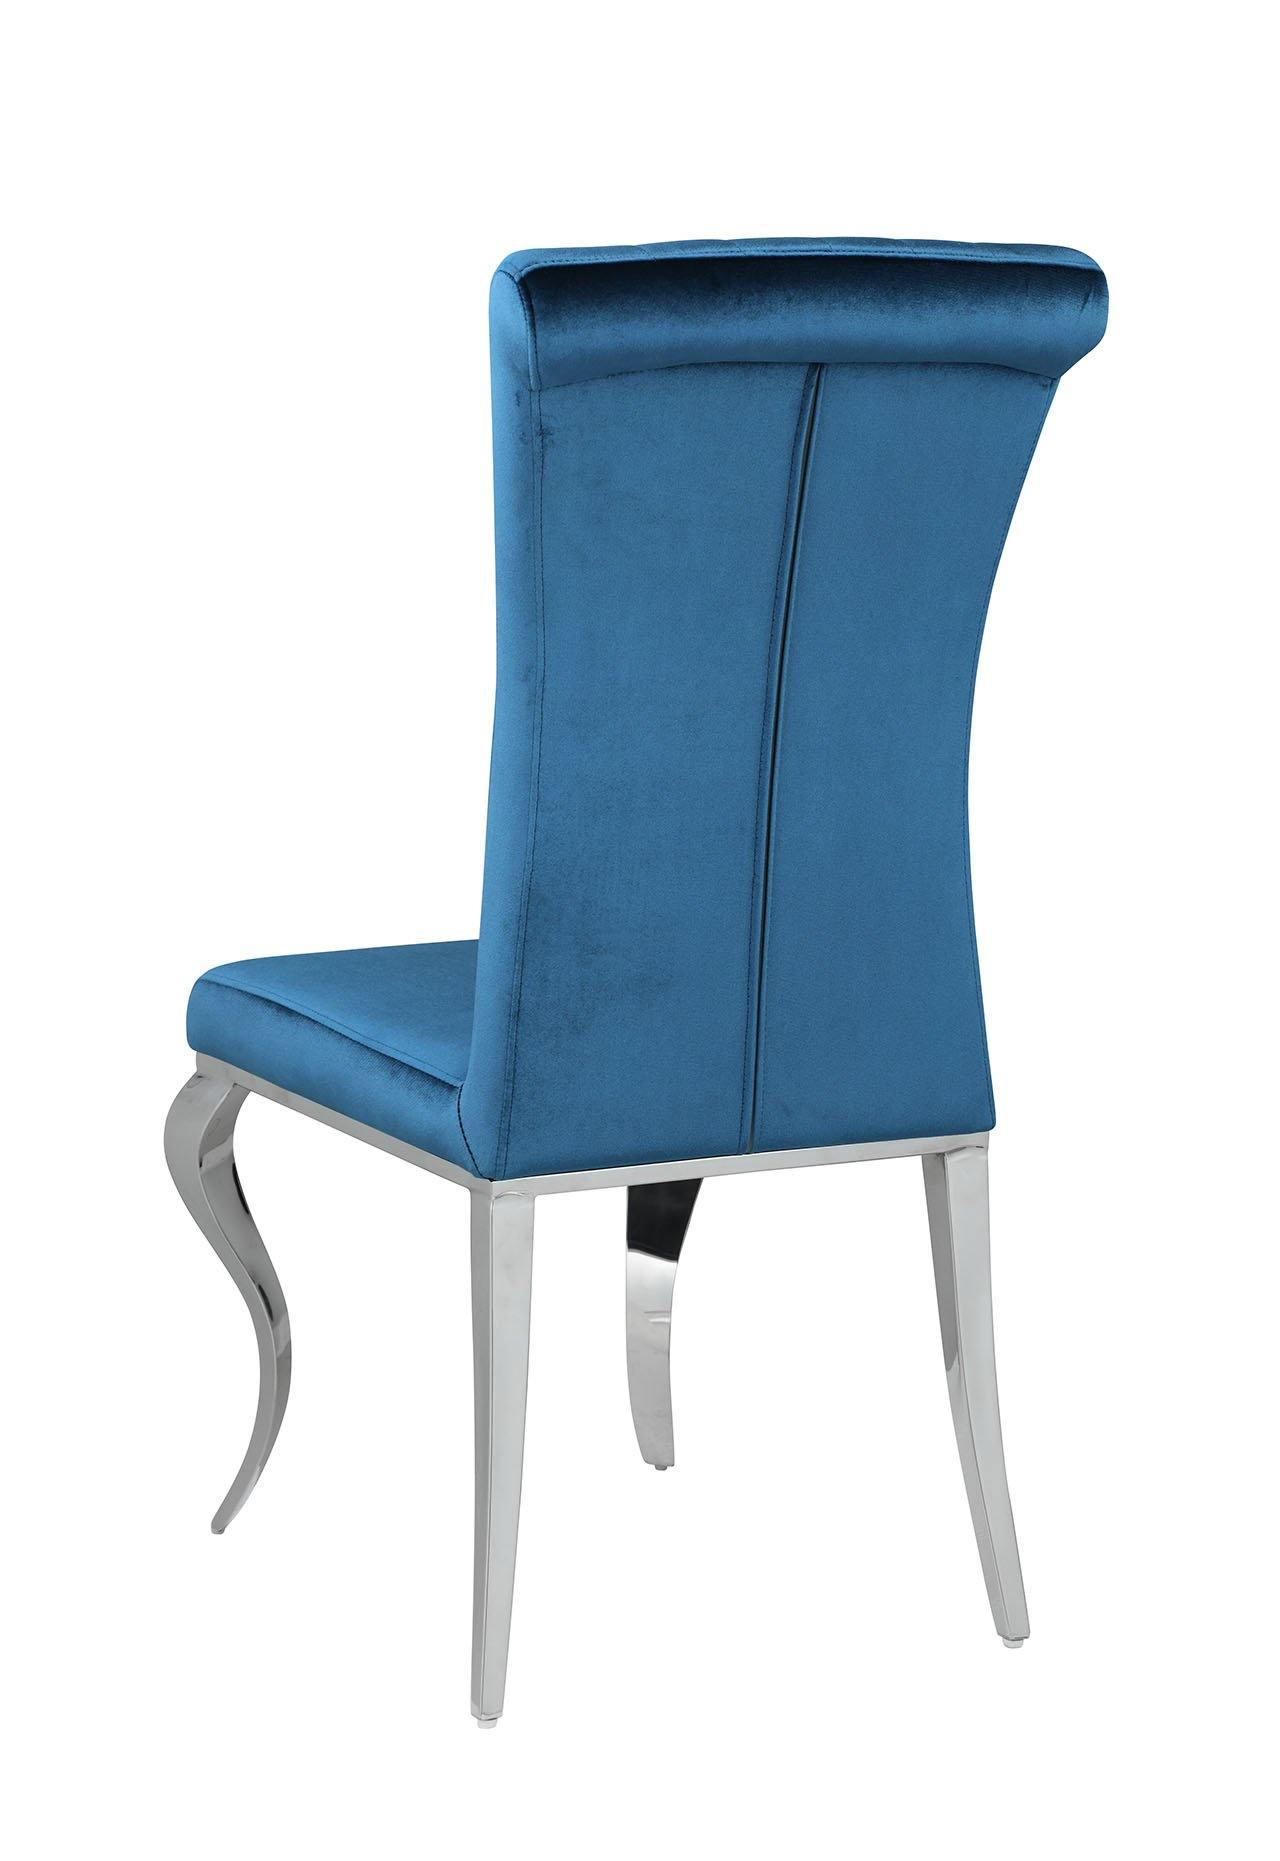 Dining chair 105076 Teal Dining Chair1 By coaster - sofafair.com